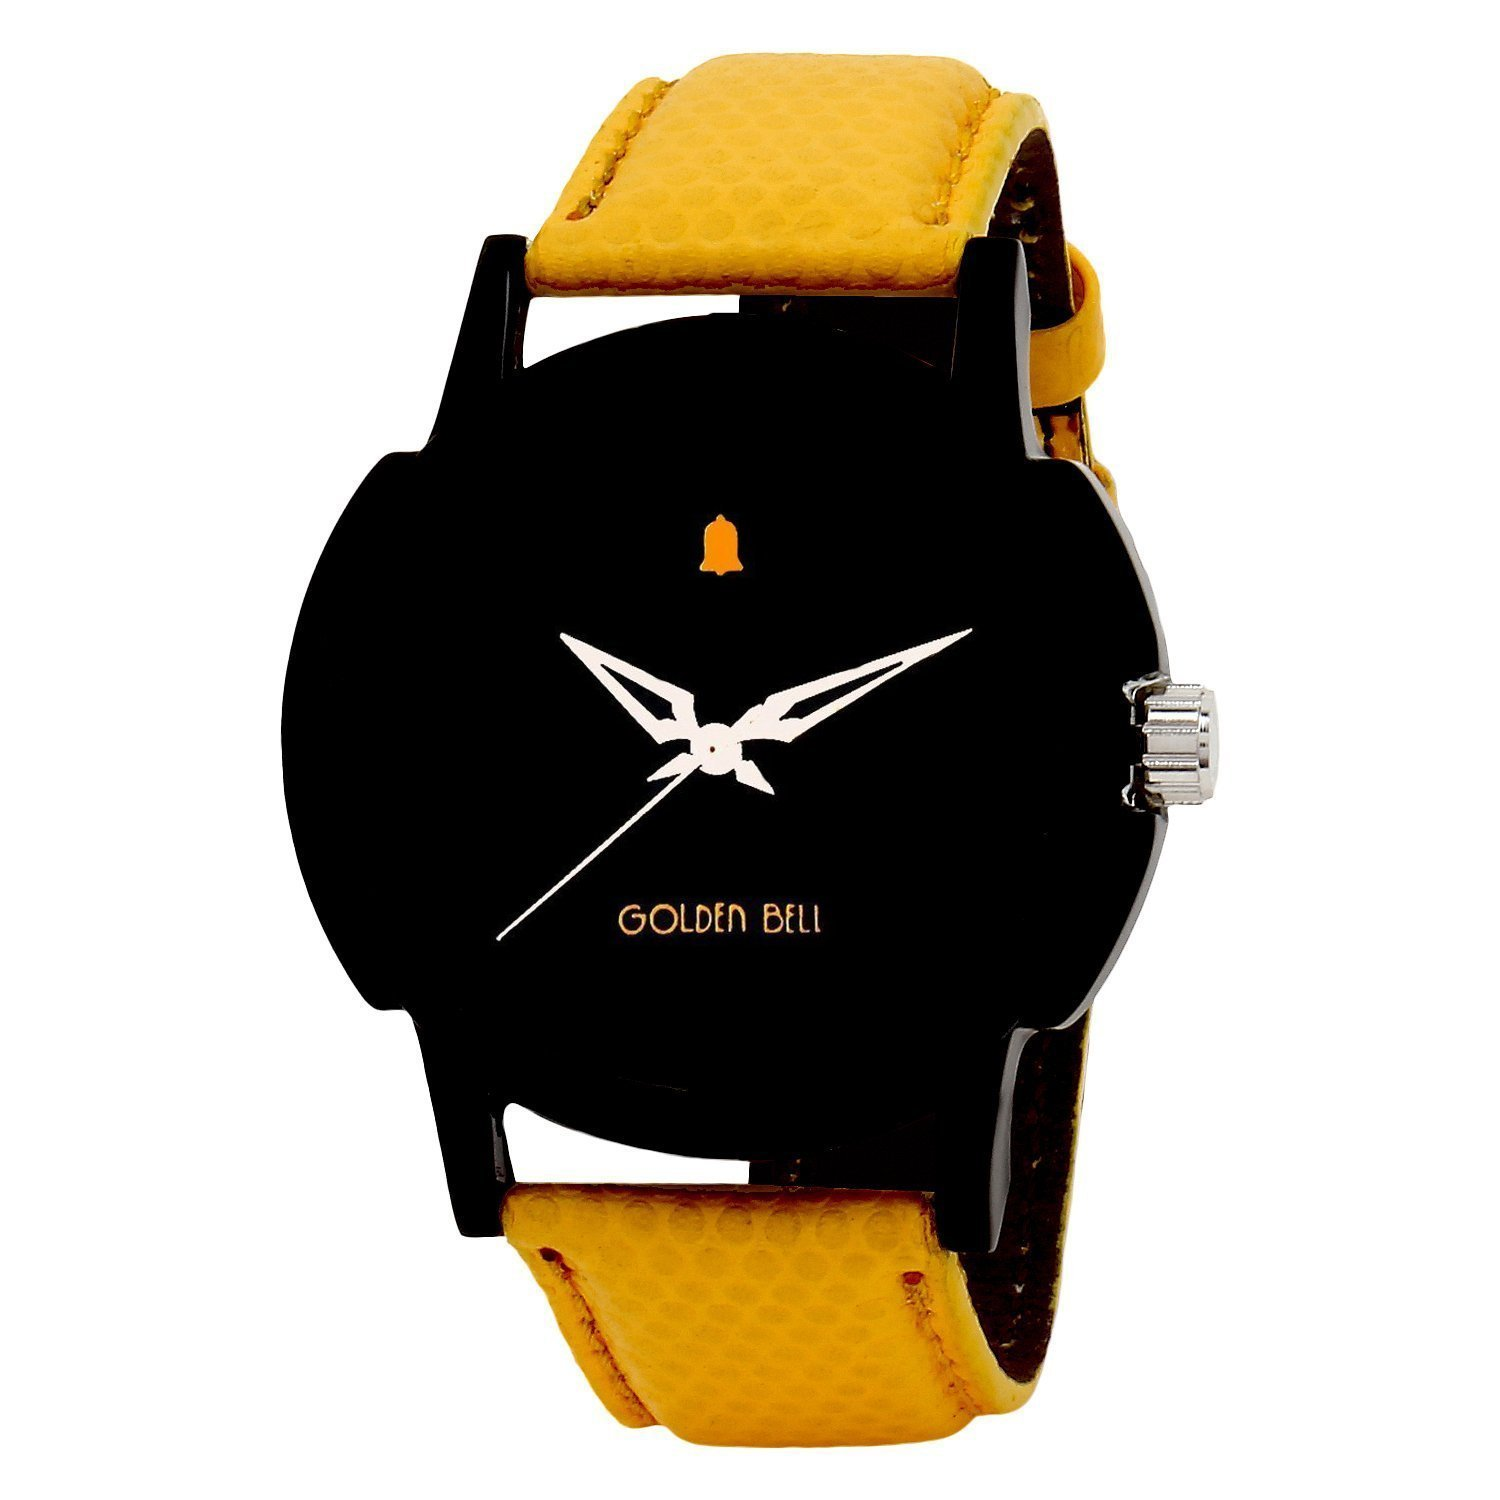 Golden Bell Analogue Original Black Dial Yellow Strap Wrist Watch For Men - GB-406BlkD By amazon @ Rs.349